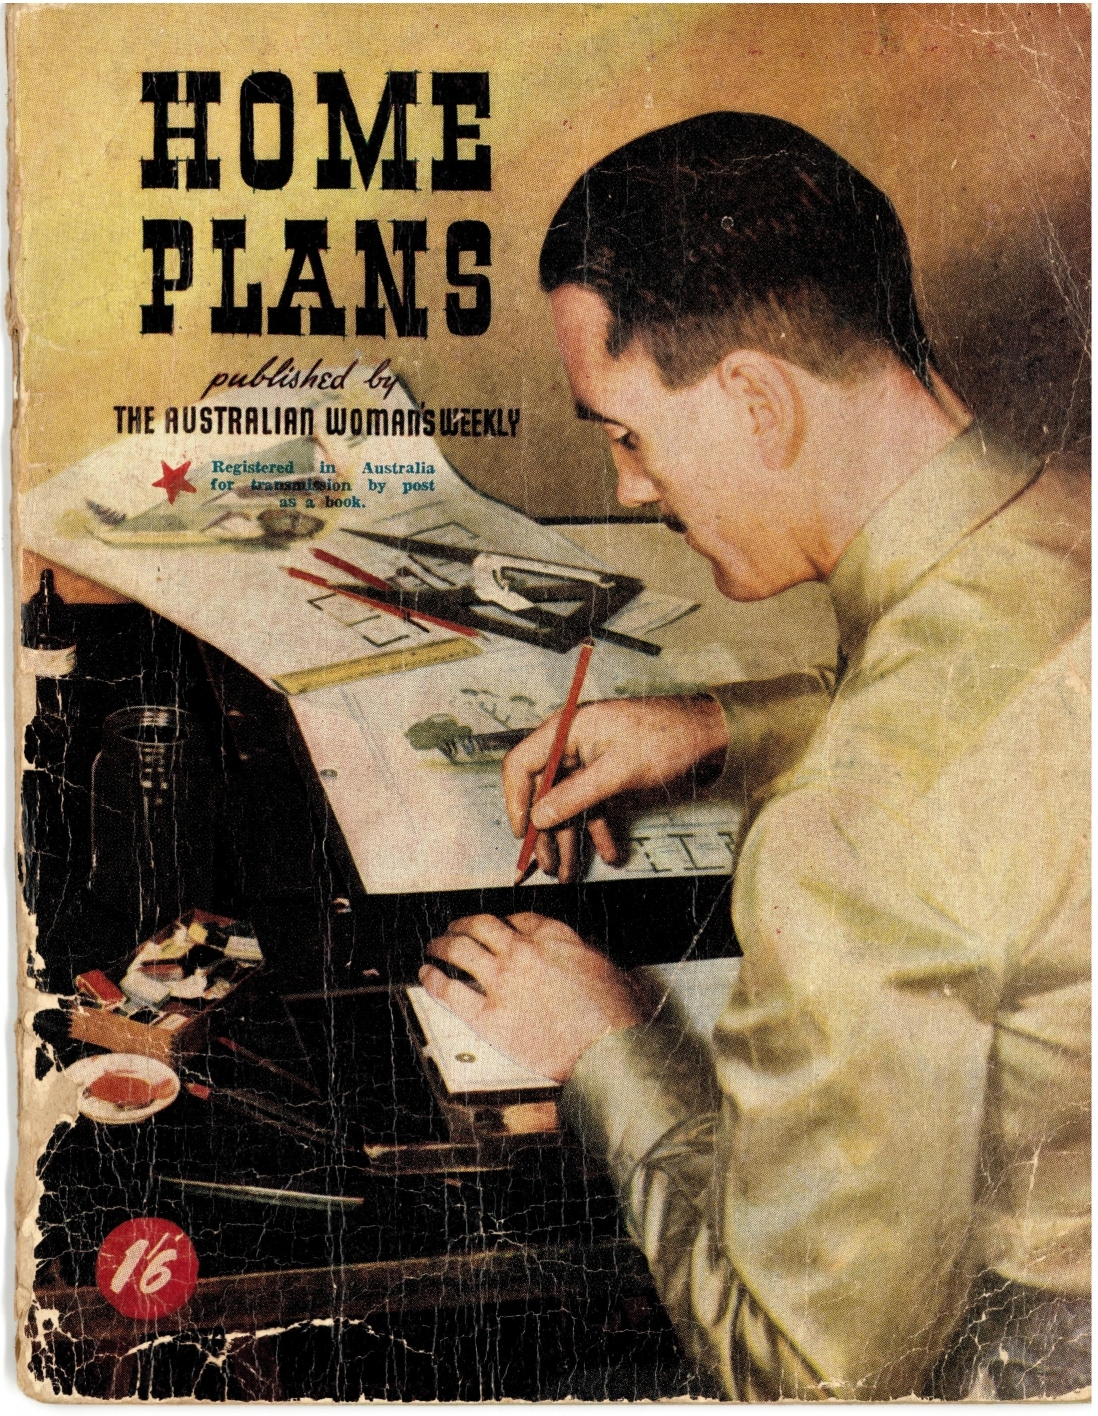 Home plans book c1946